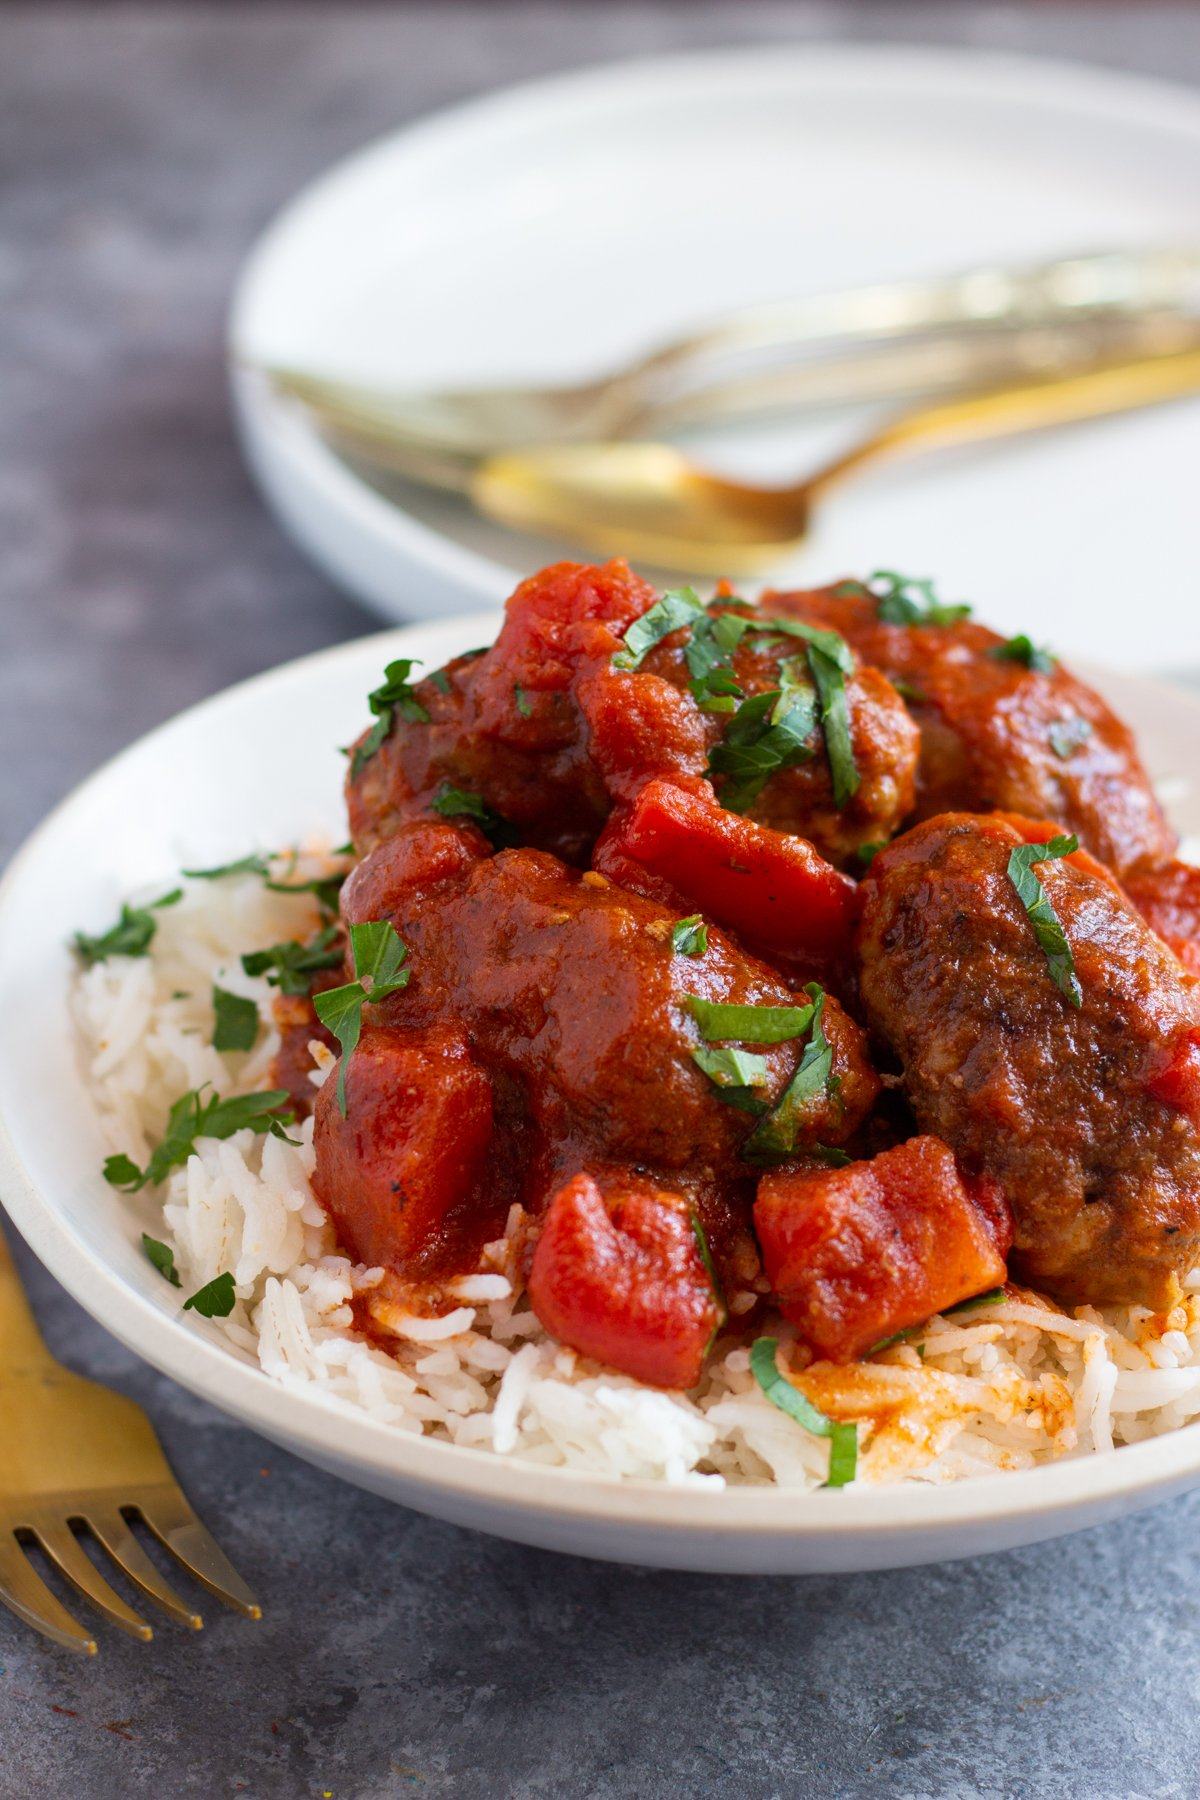 Soutzoukakia are Greek style meatballs cooked in a delicious tomato sauce. These meatballs are juicy thanks to a simple technique and are perfect with some rice, potatoes or even pasta. Learn how to make juicy meatballs every time with my simple method! This is a super easy dinner recipe that everyone loves!